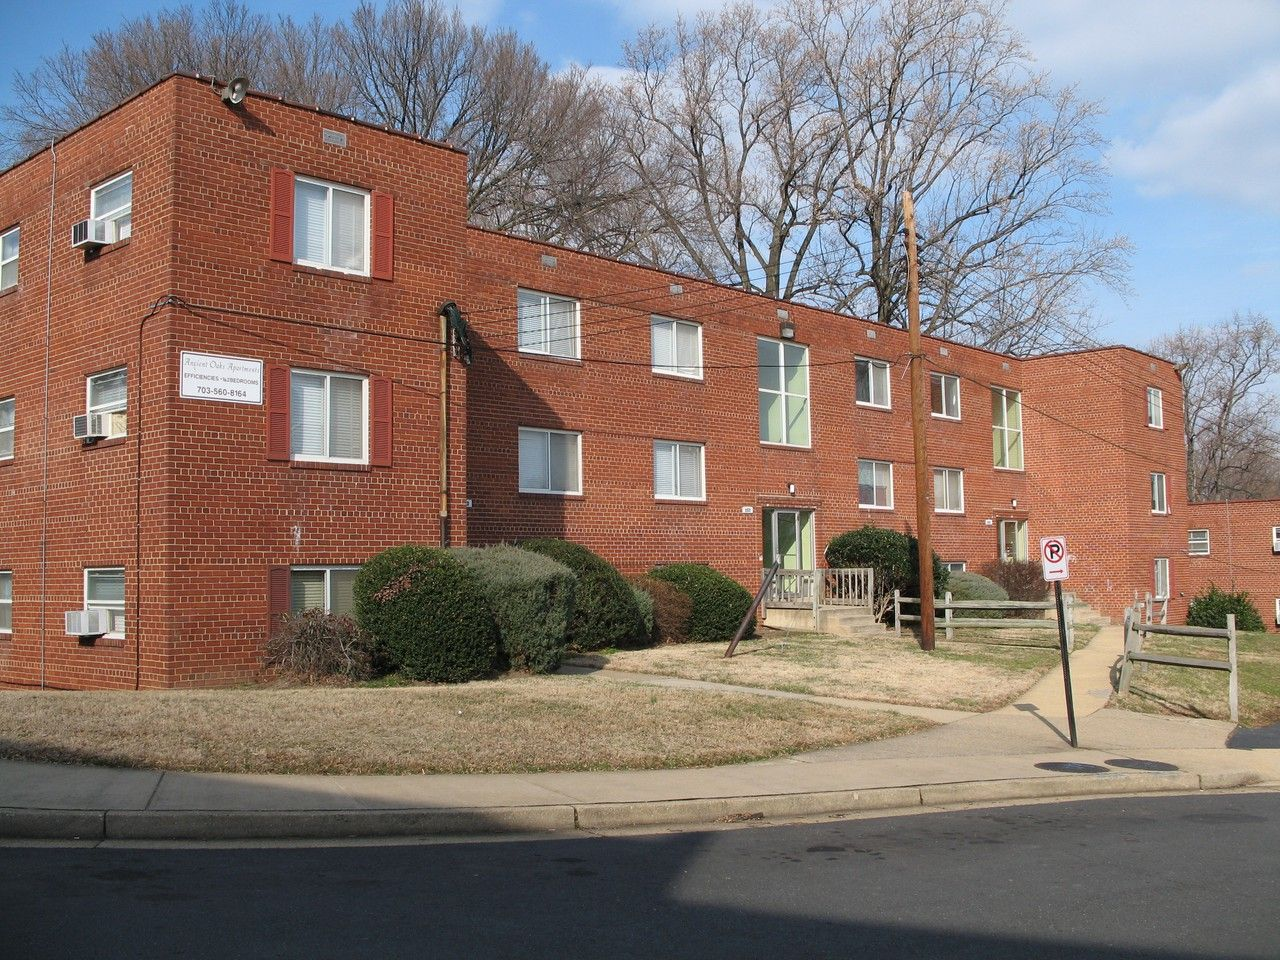 2501 N 20th Rd Apartments For Rent 2501 20th Rd N